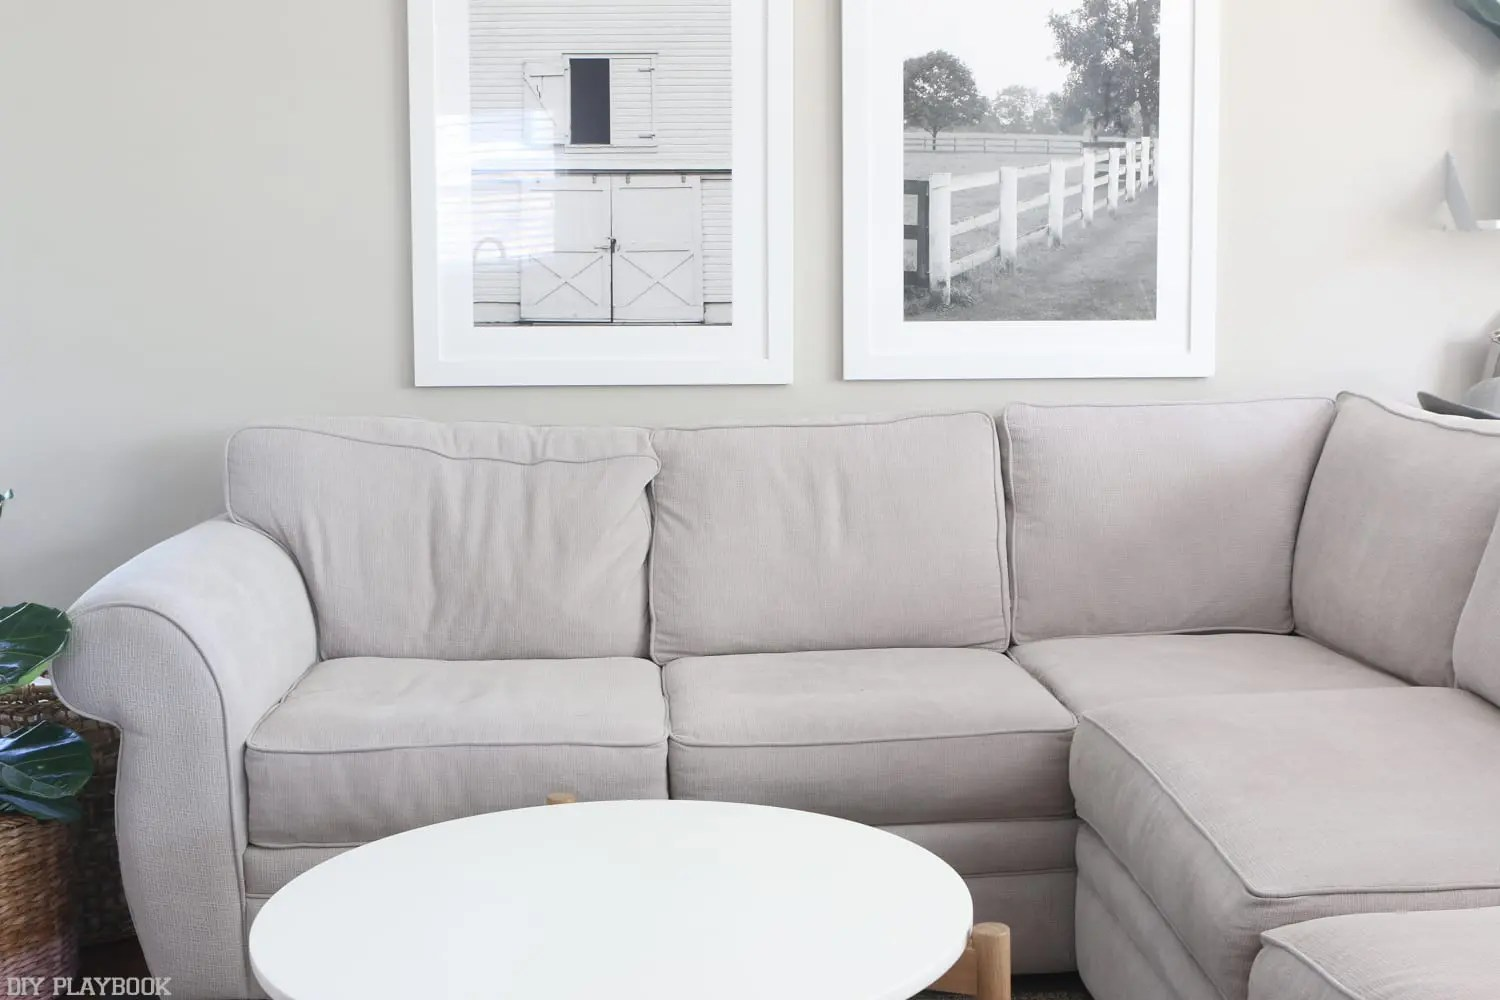 How To Clean Couch Cushions In Four Easy Steps - Sofa Cushions Cleaning